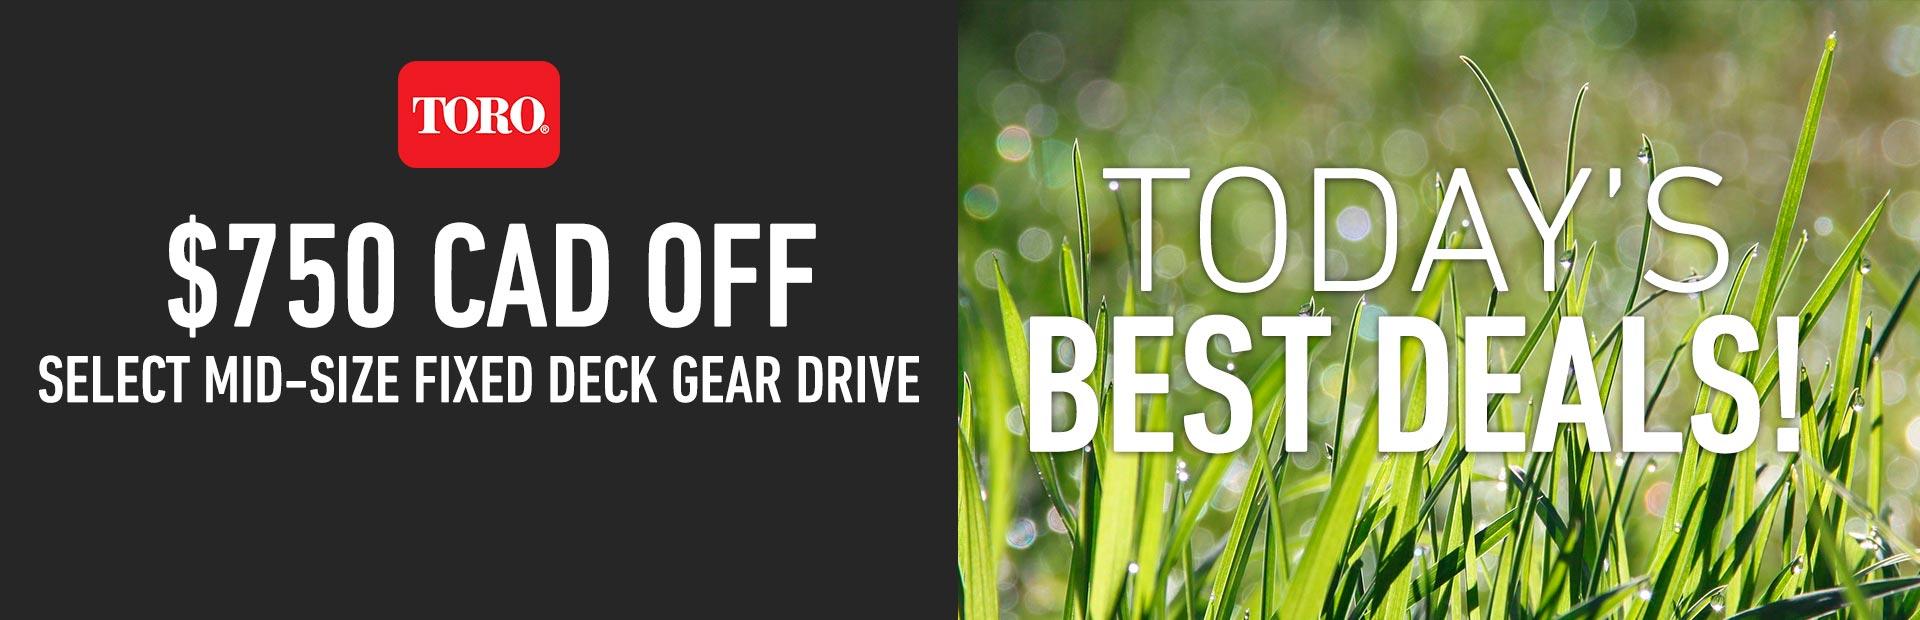 Toro: $750 CAD Off Select Mid-Size Fixed Deck Gear Drive